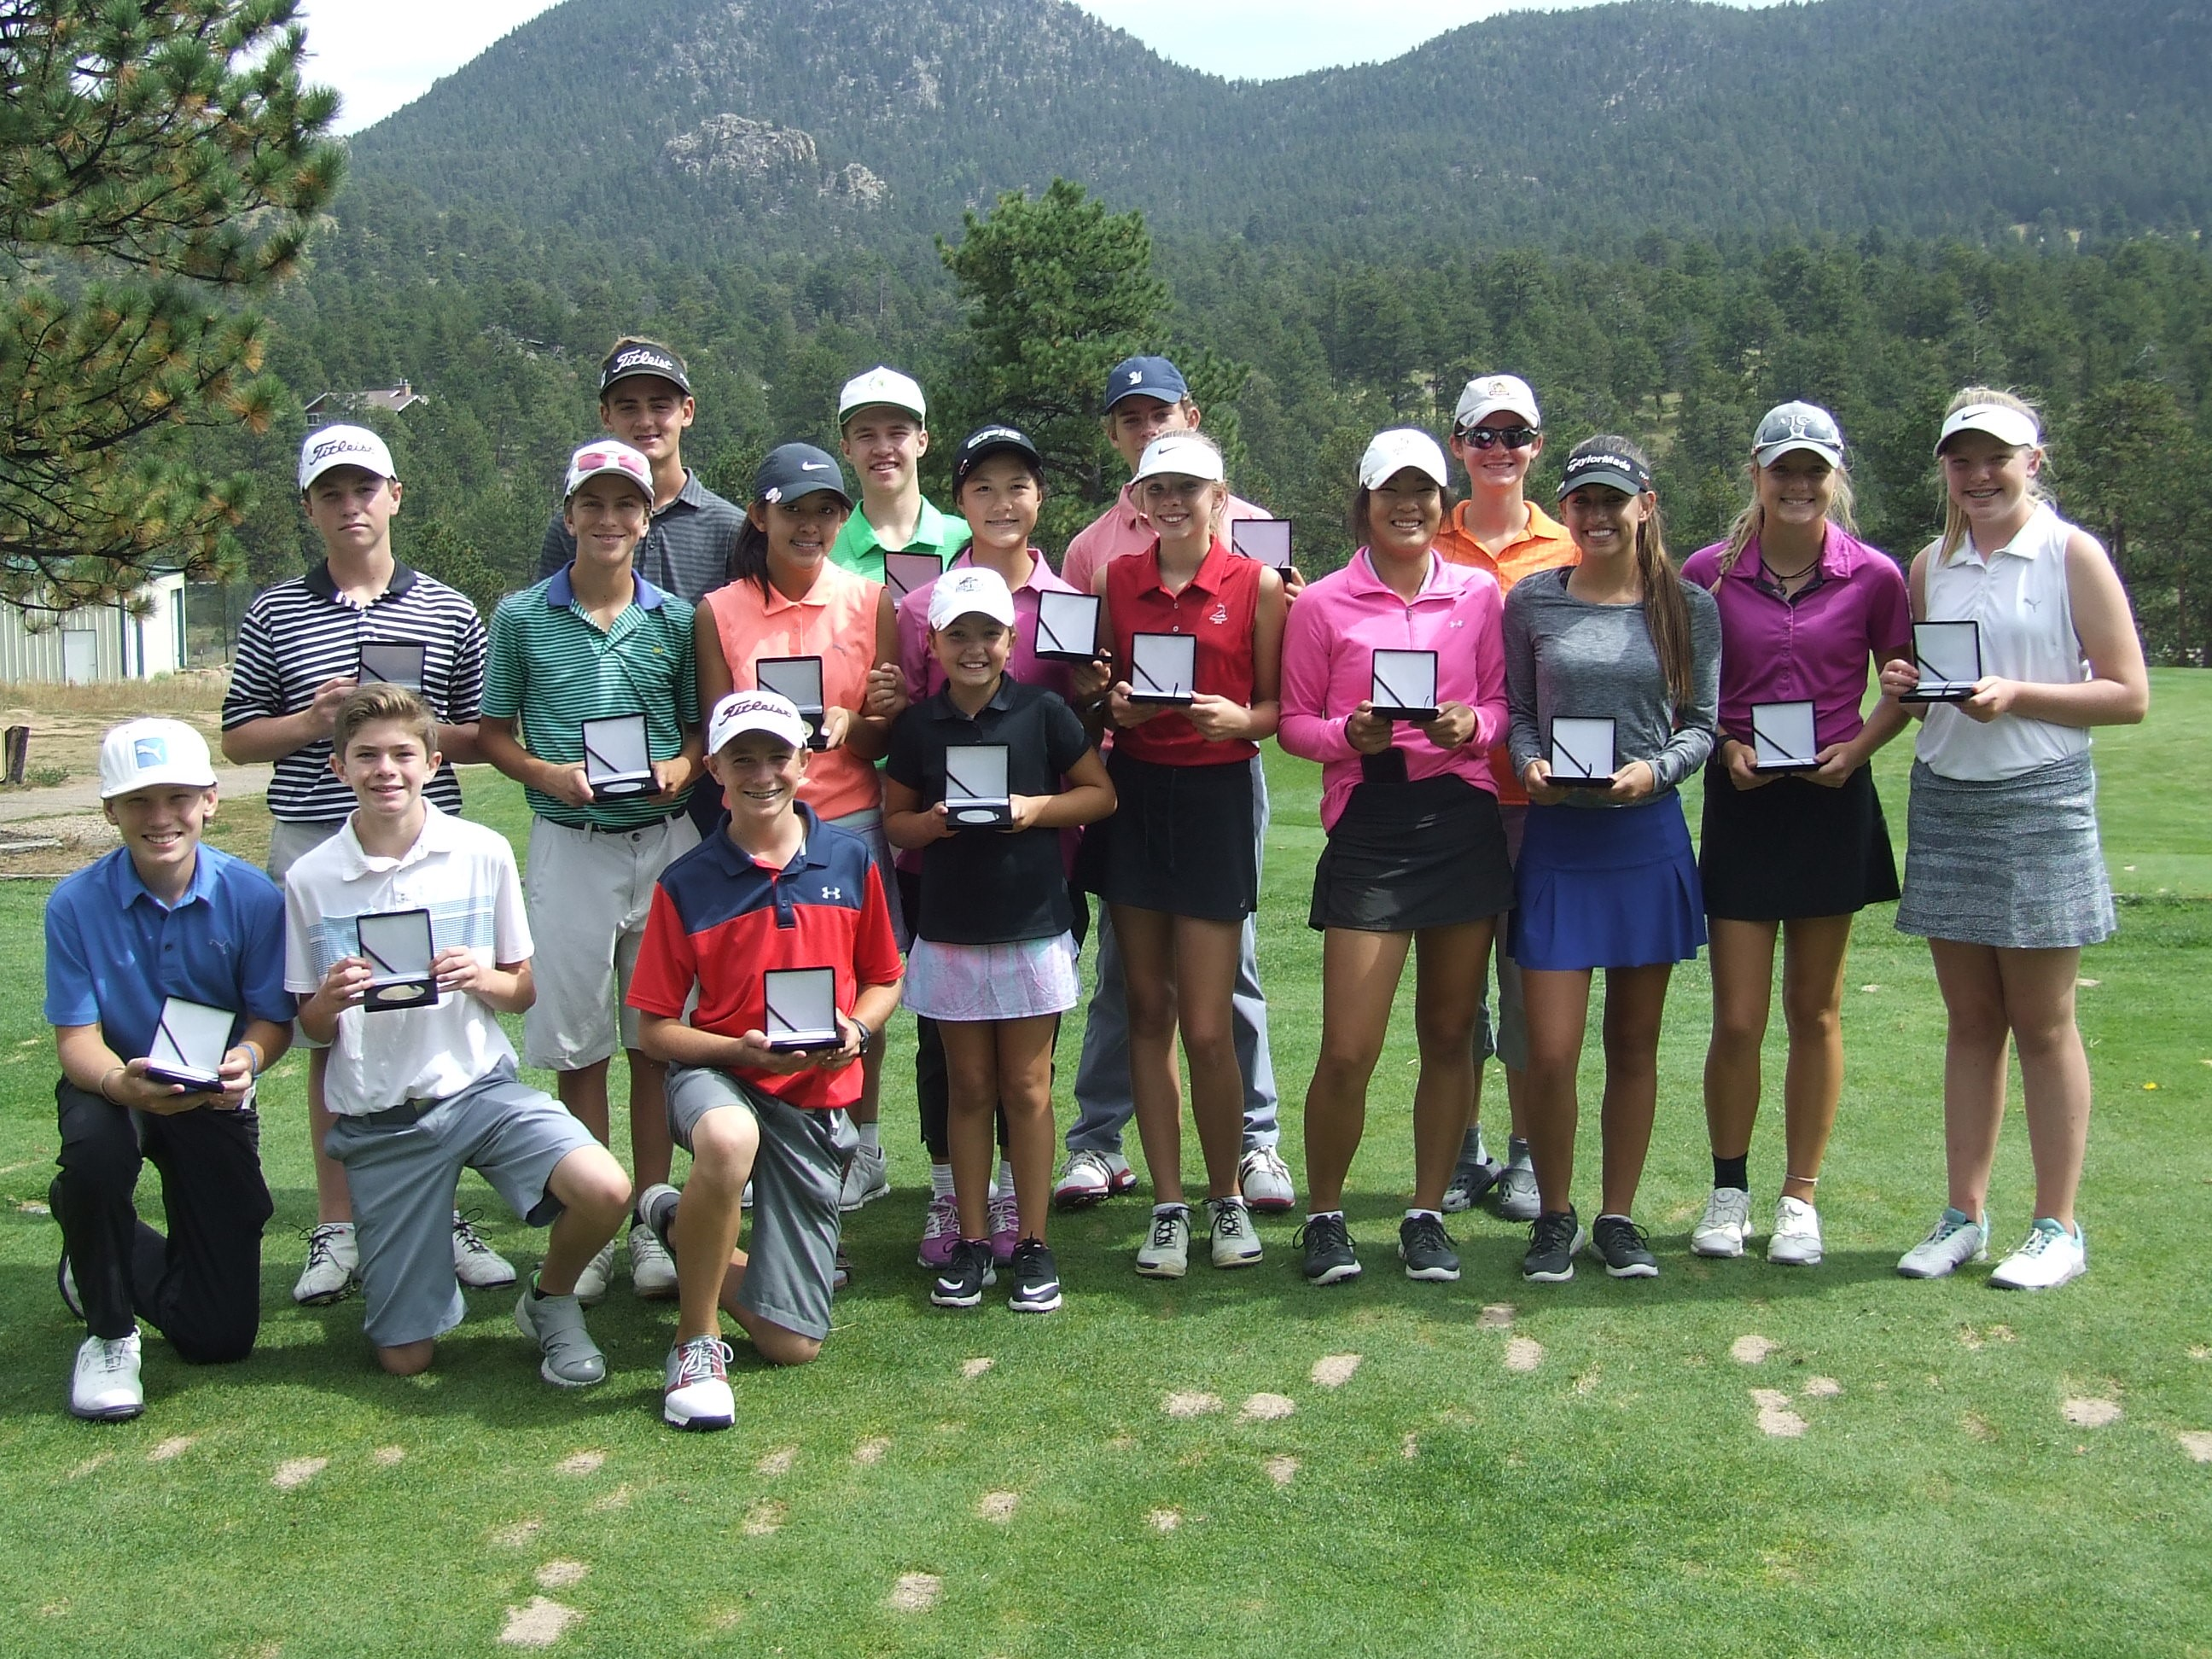 JGAC Fall Event in Estes Park - Final Results